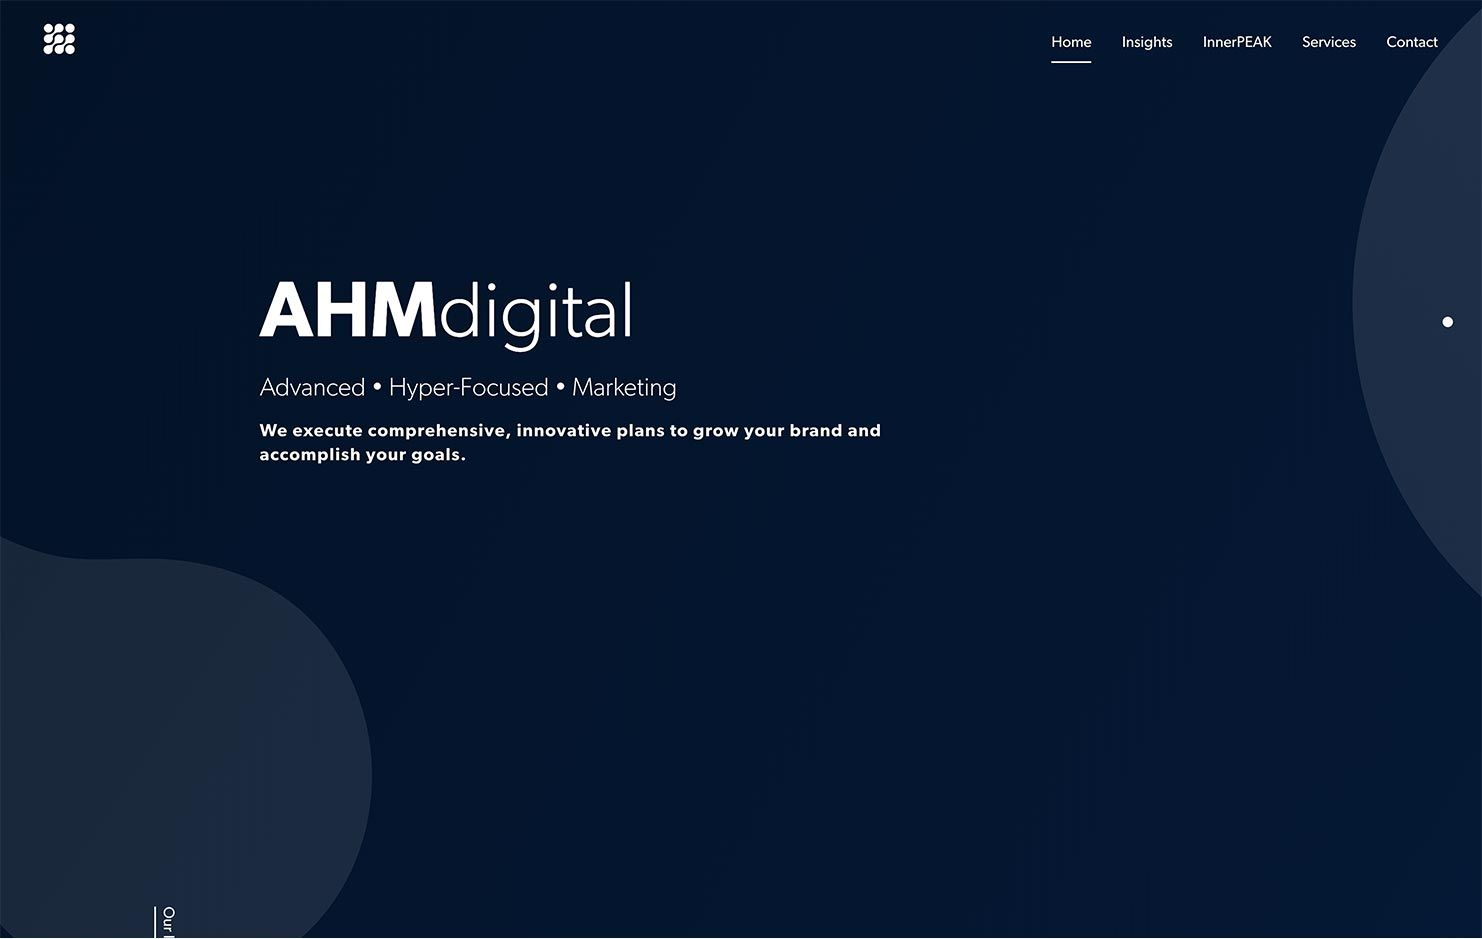 AHMdigital website